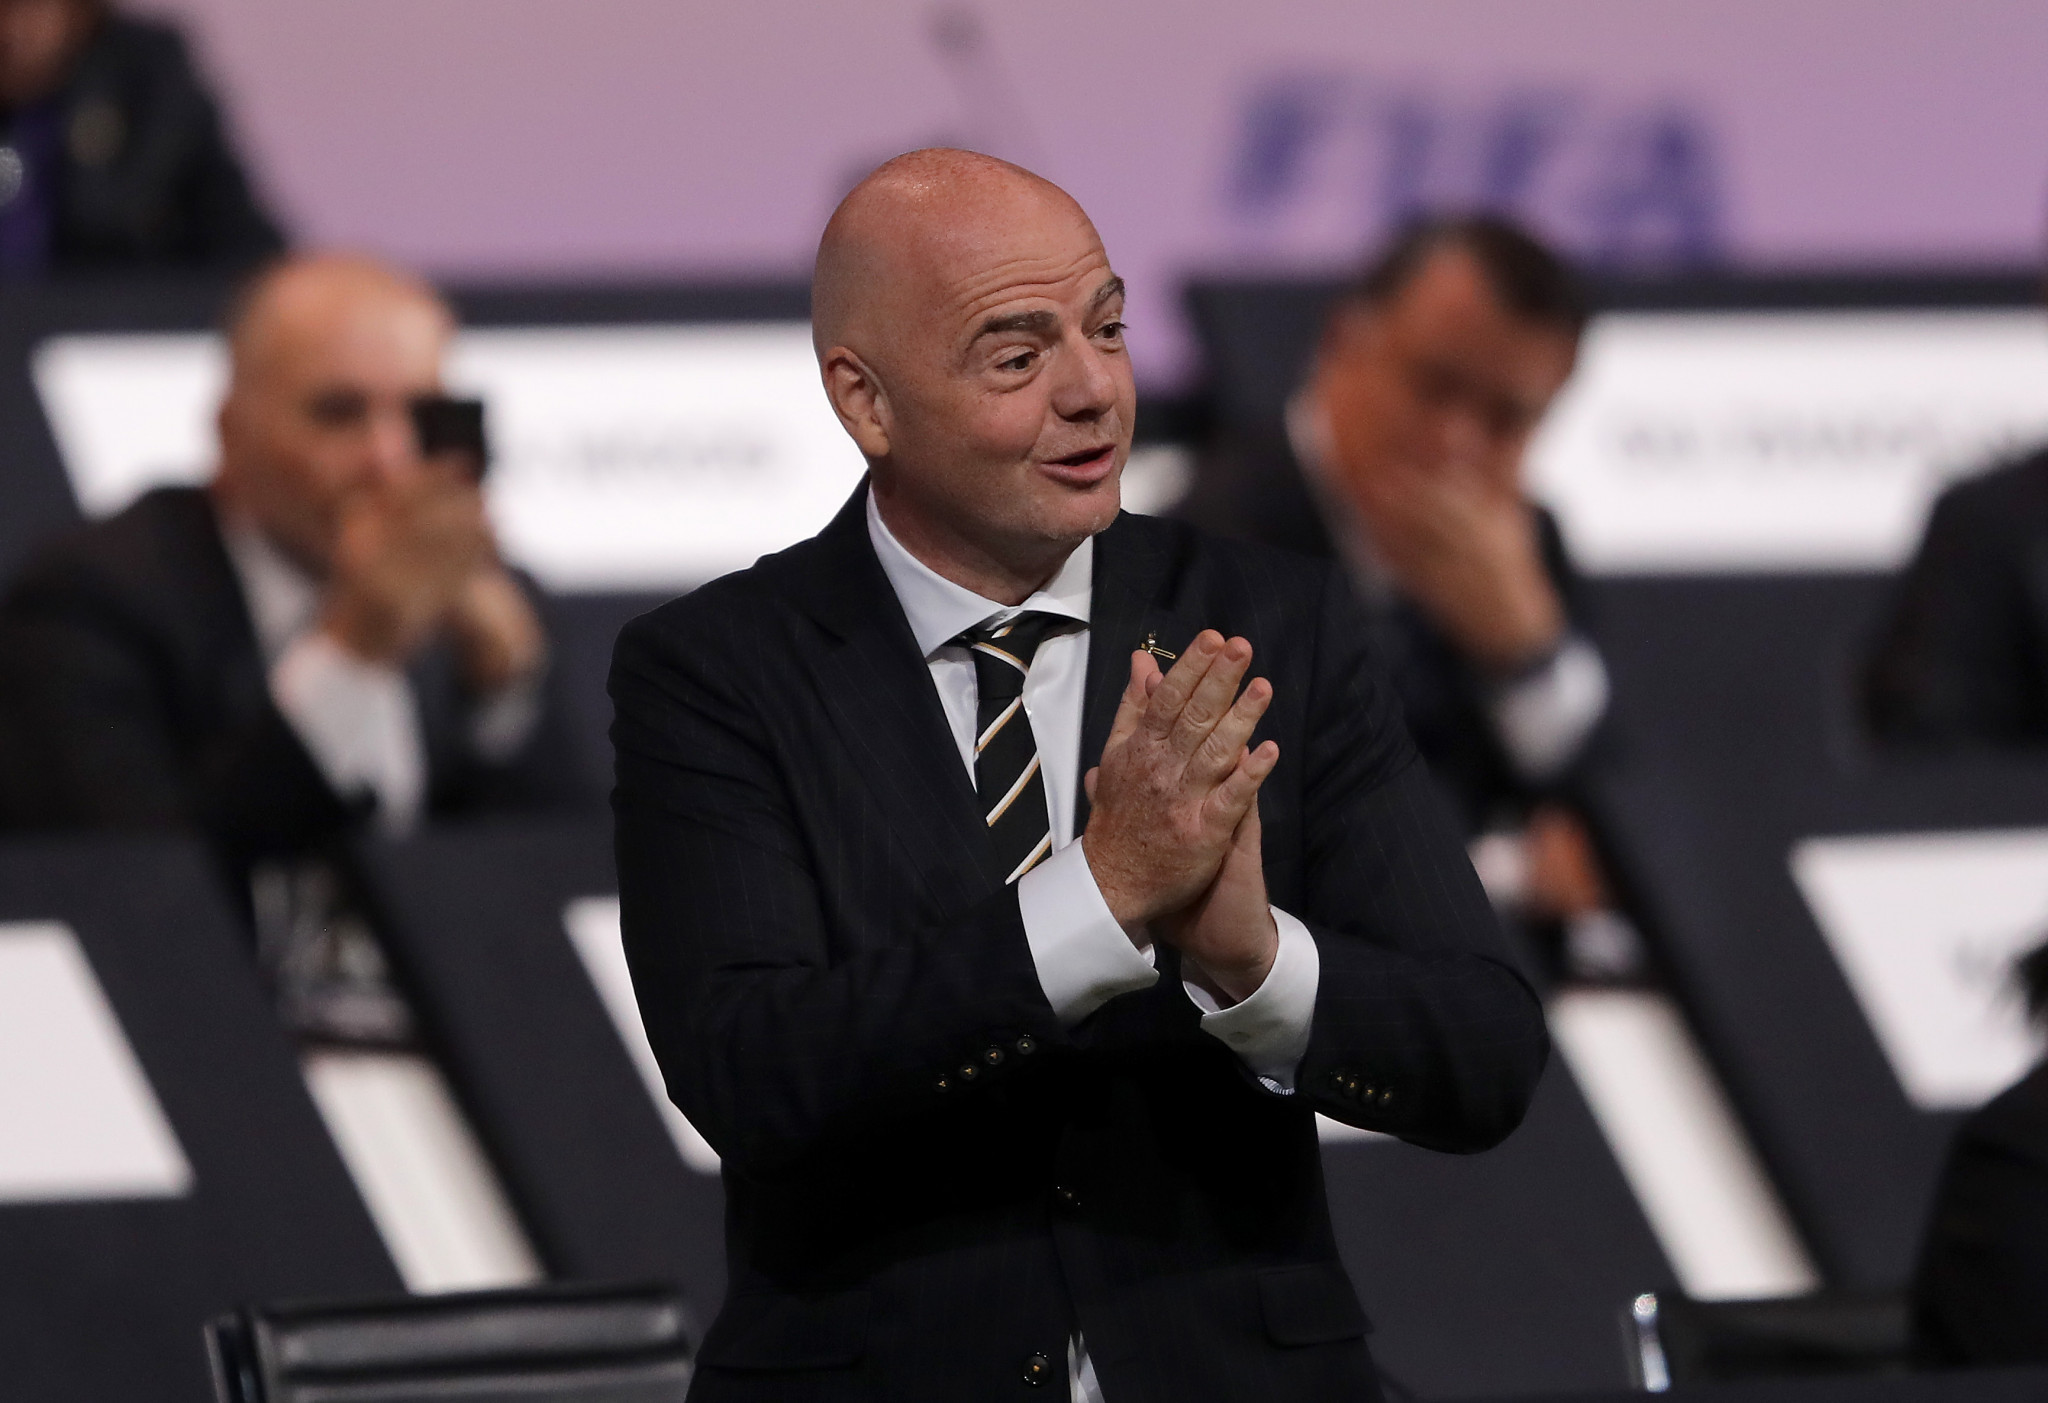 Gianni Infantino has denied any wrongdoing over his meetings with Michael Lauber ©Getty Images